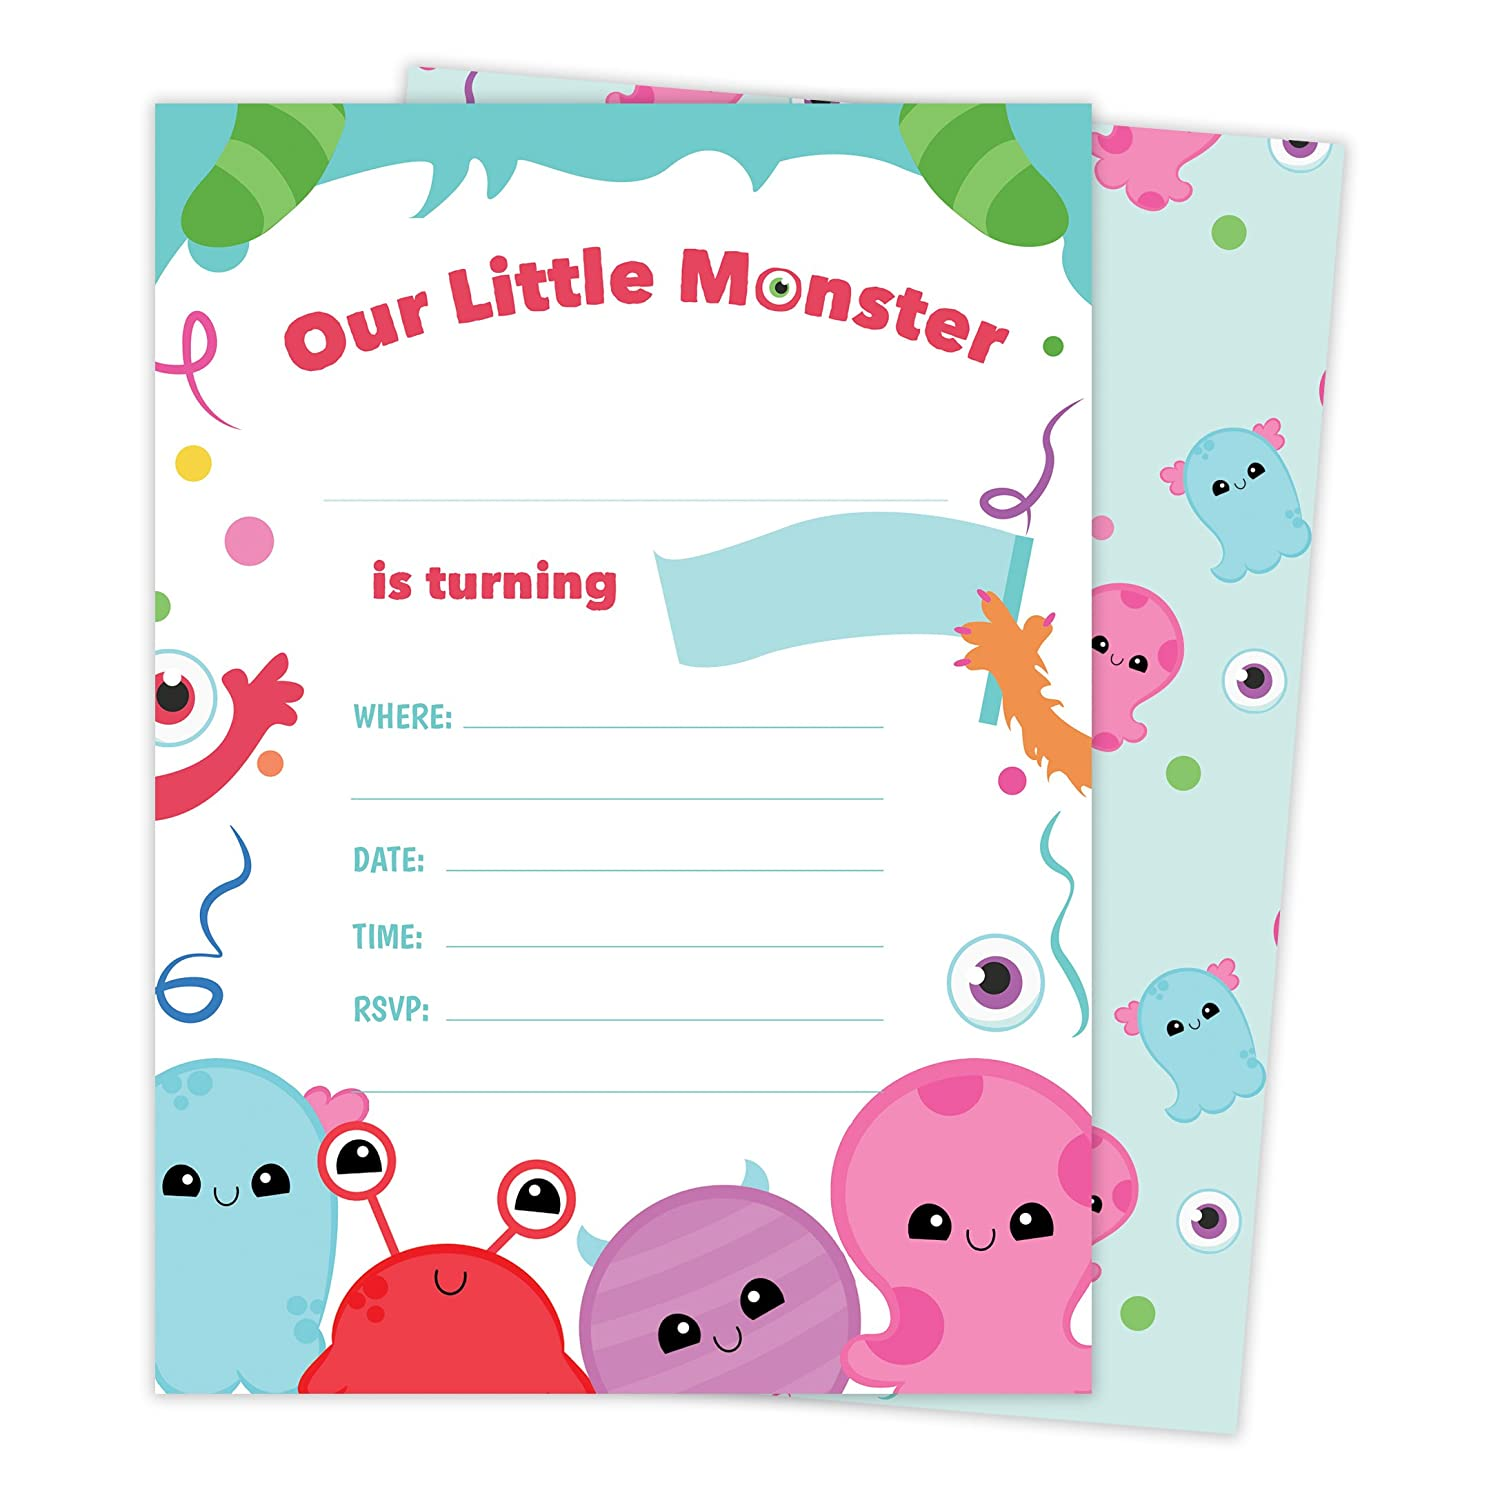 Monster Style 1 Happy Birthday Invitations Invite Cards 25 Count With Envelopes Seal Stickers Vinyl Boys Girls Kids Party